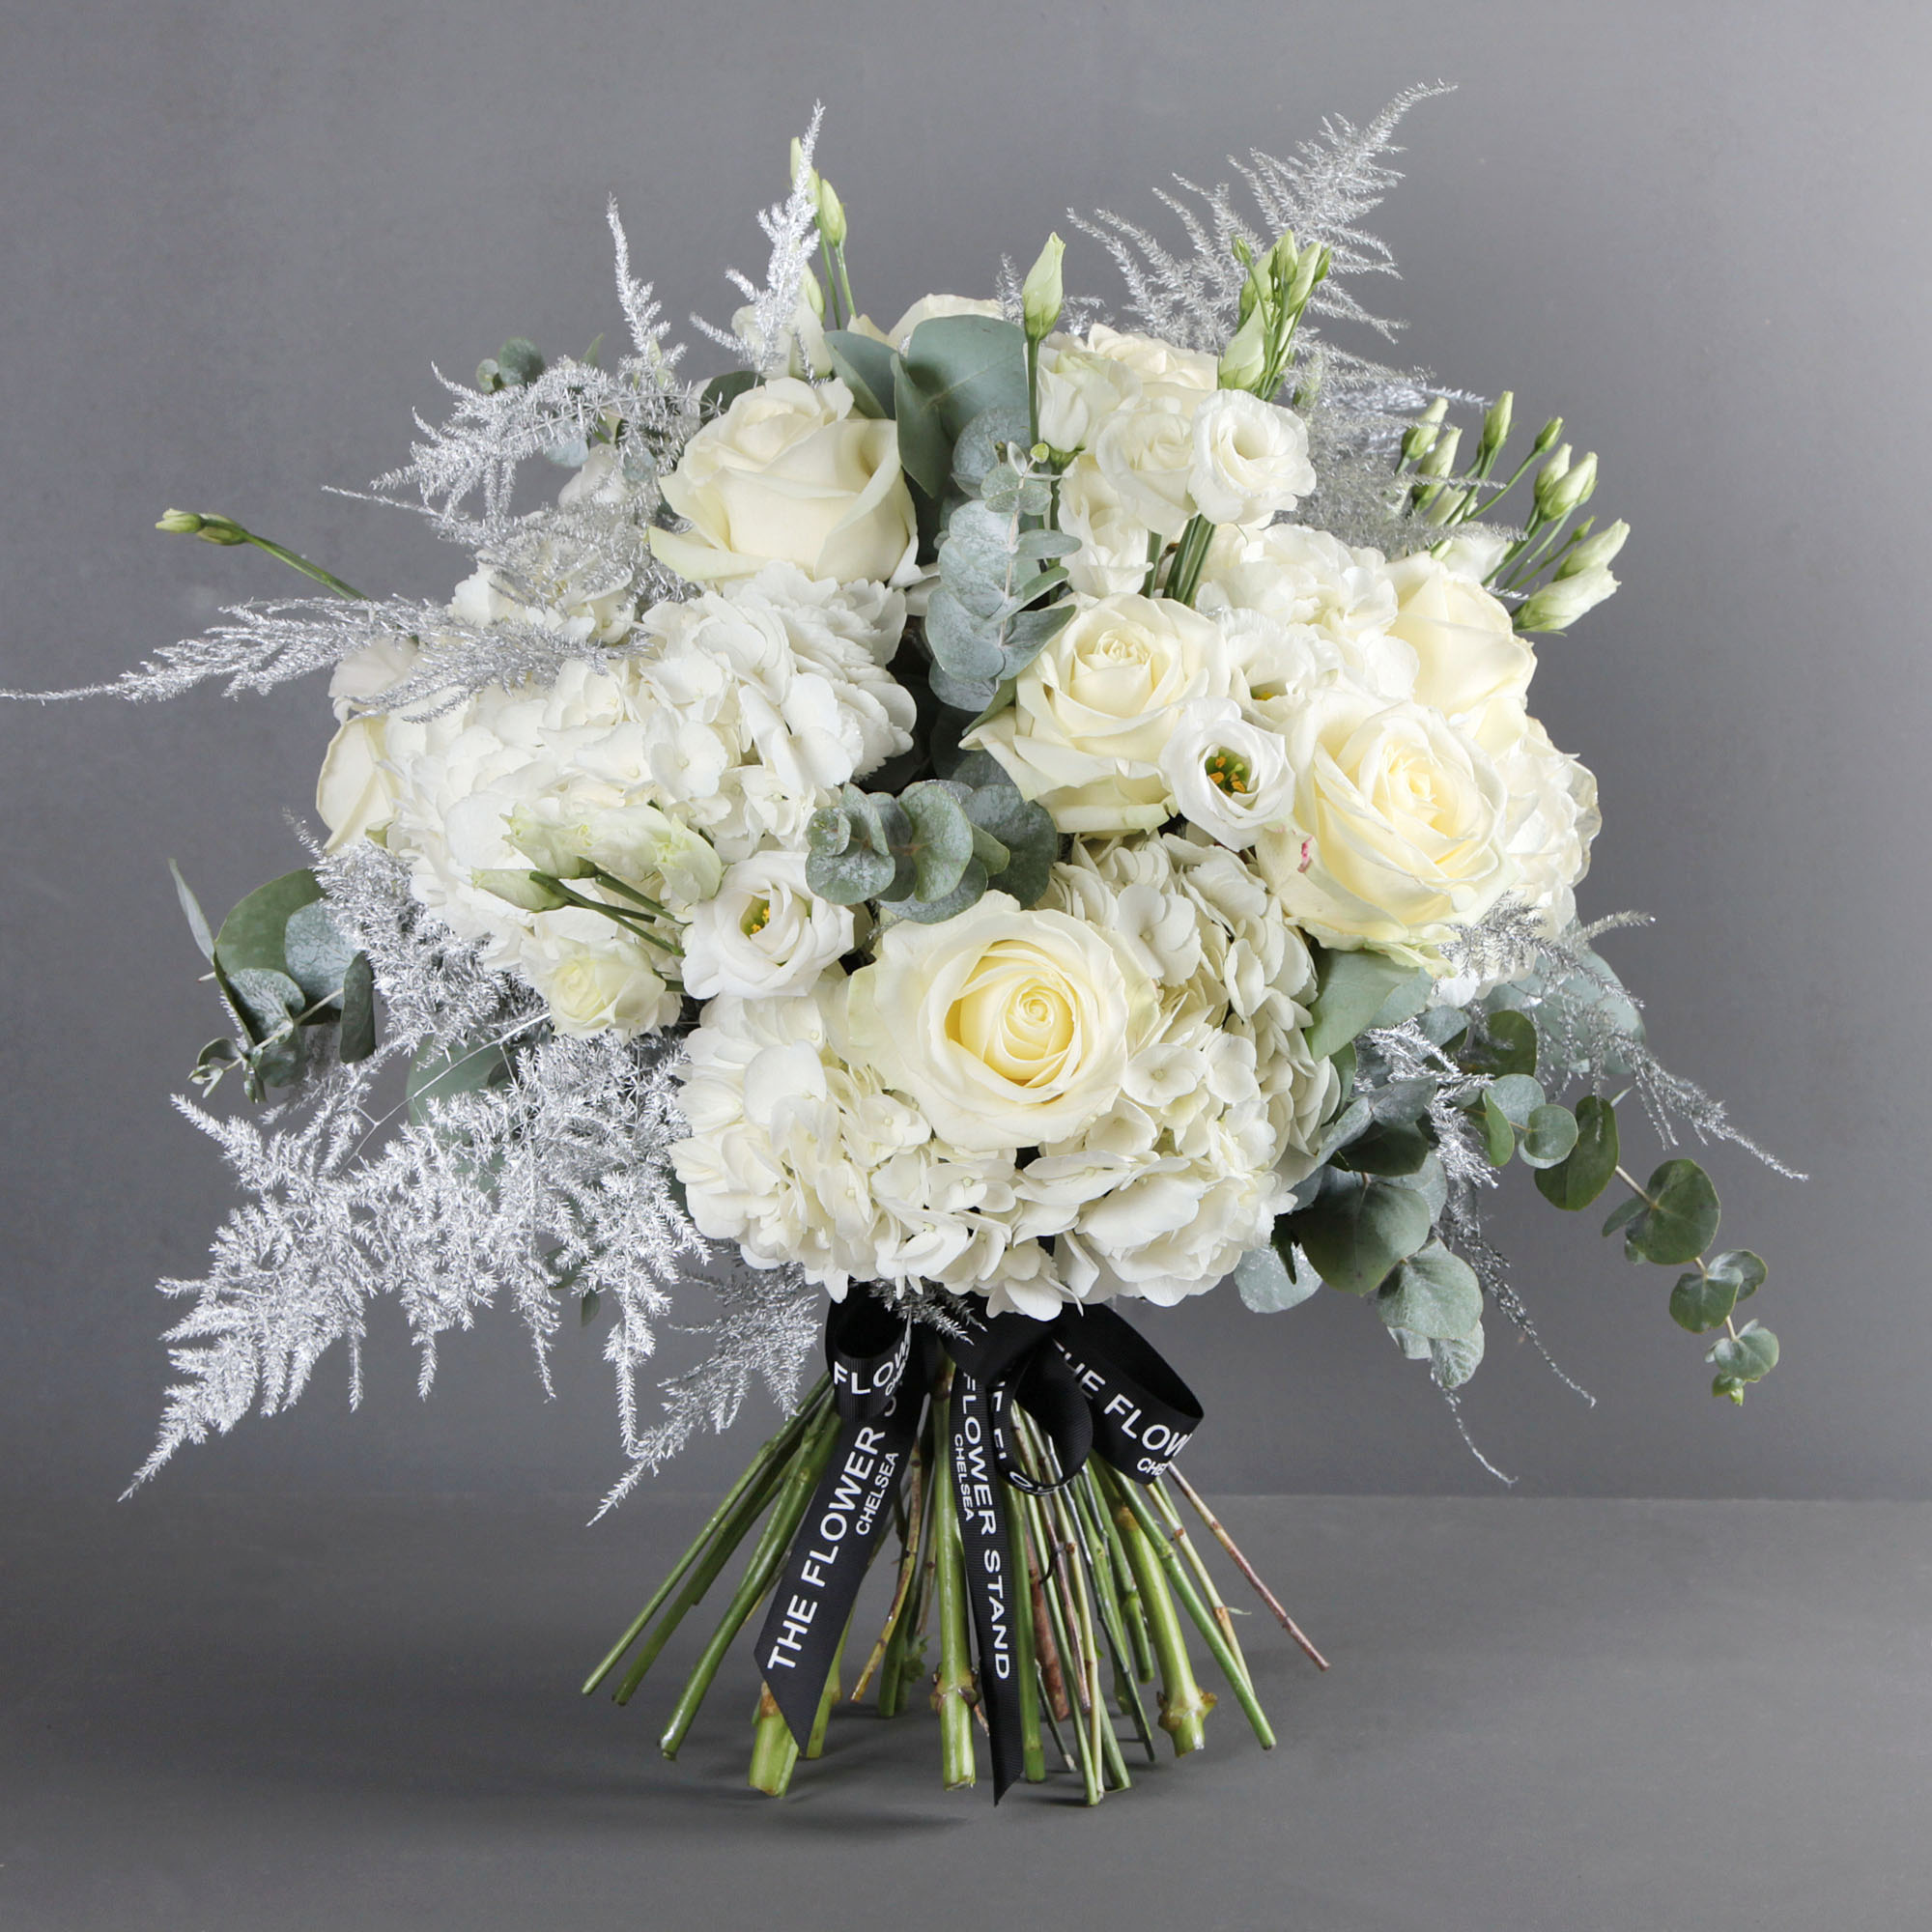 Christmas Wedding Bouquets And Flowers: Festive White Roses & Hydrangeas